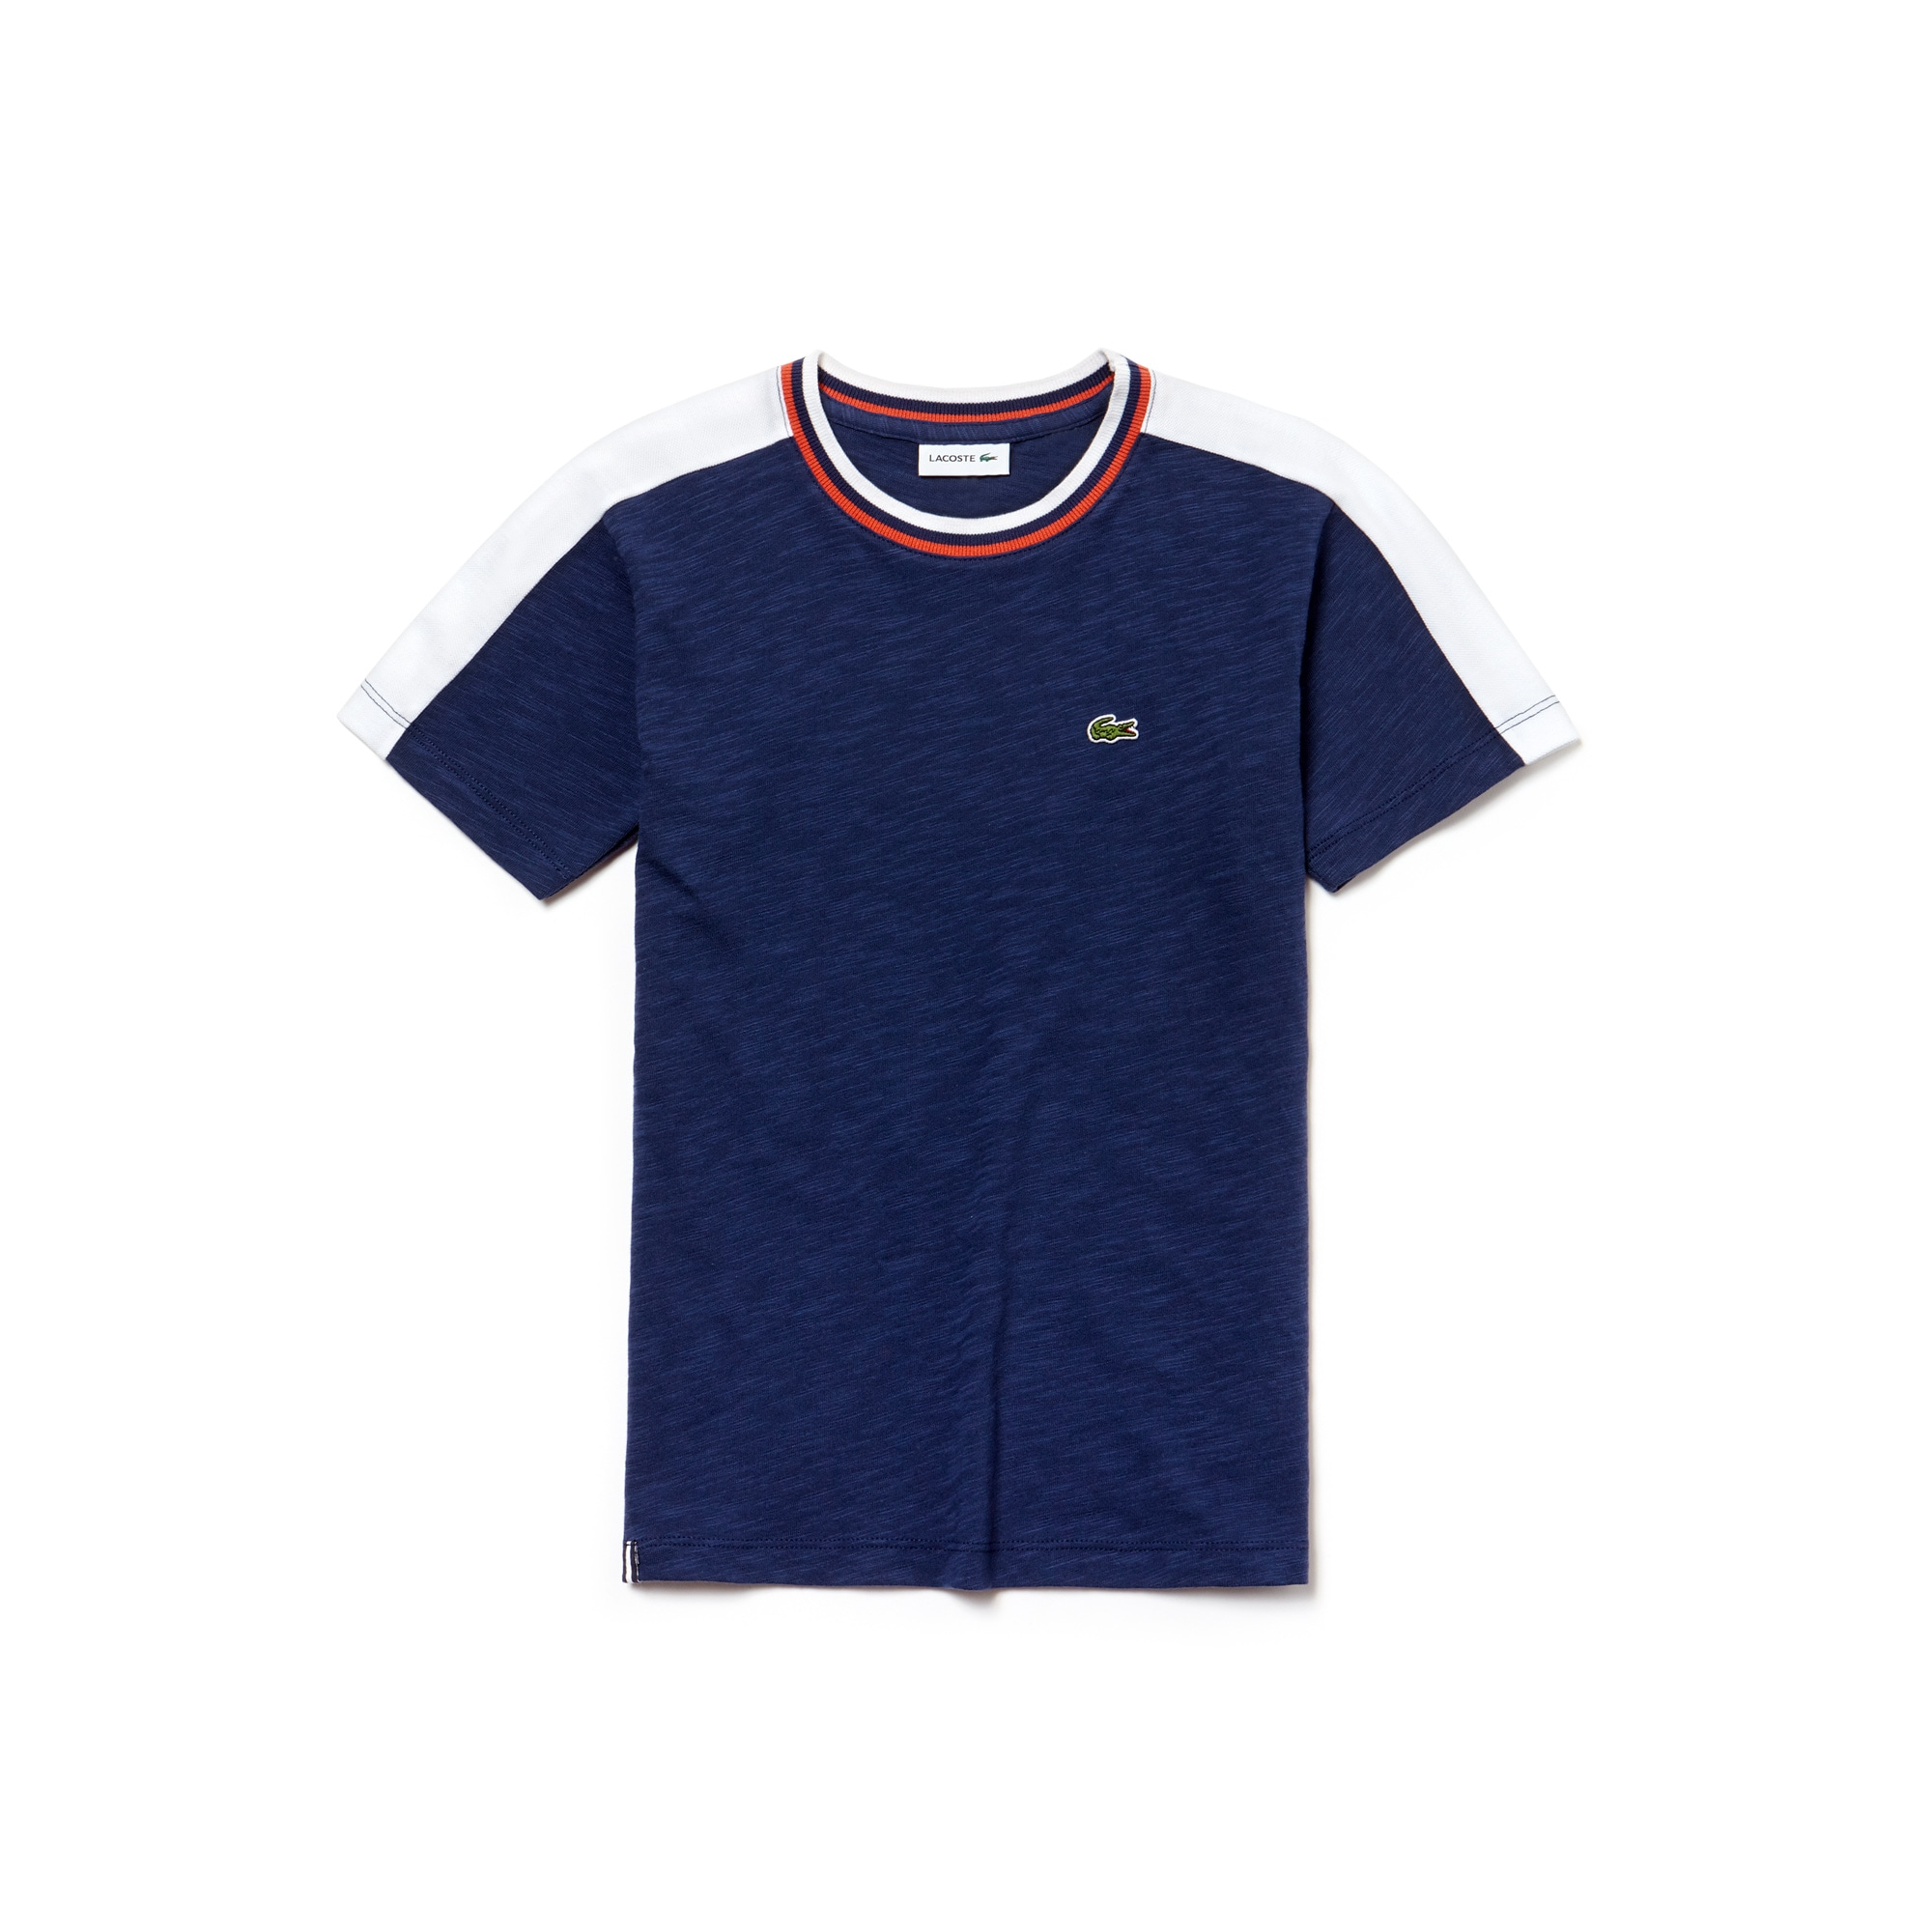 Boys' Colorblock Flamme Jersey T-shirt